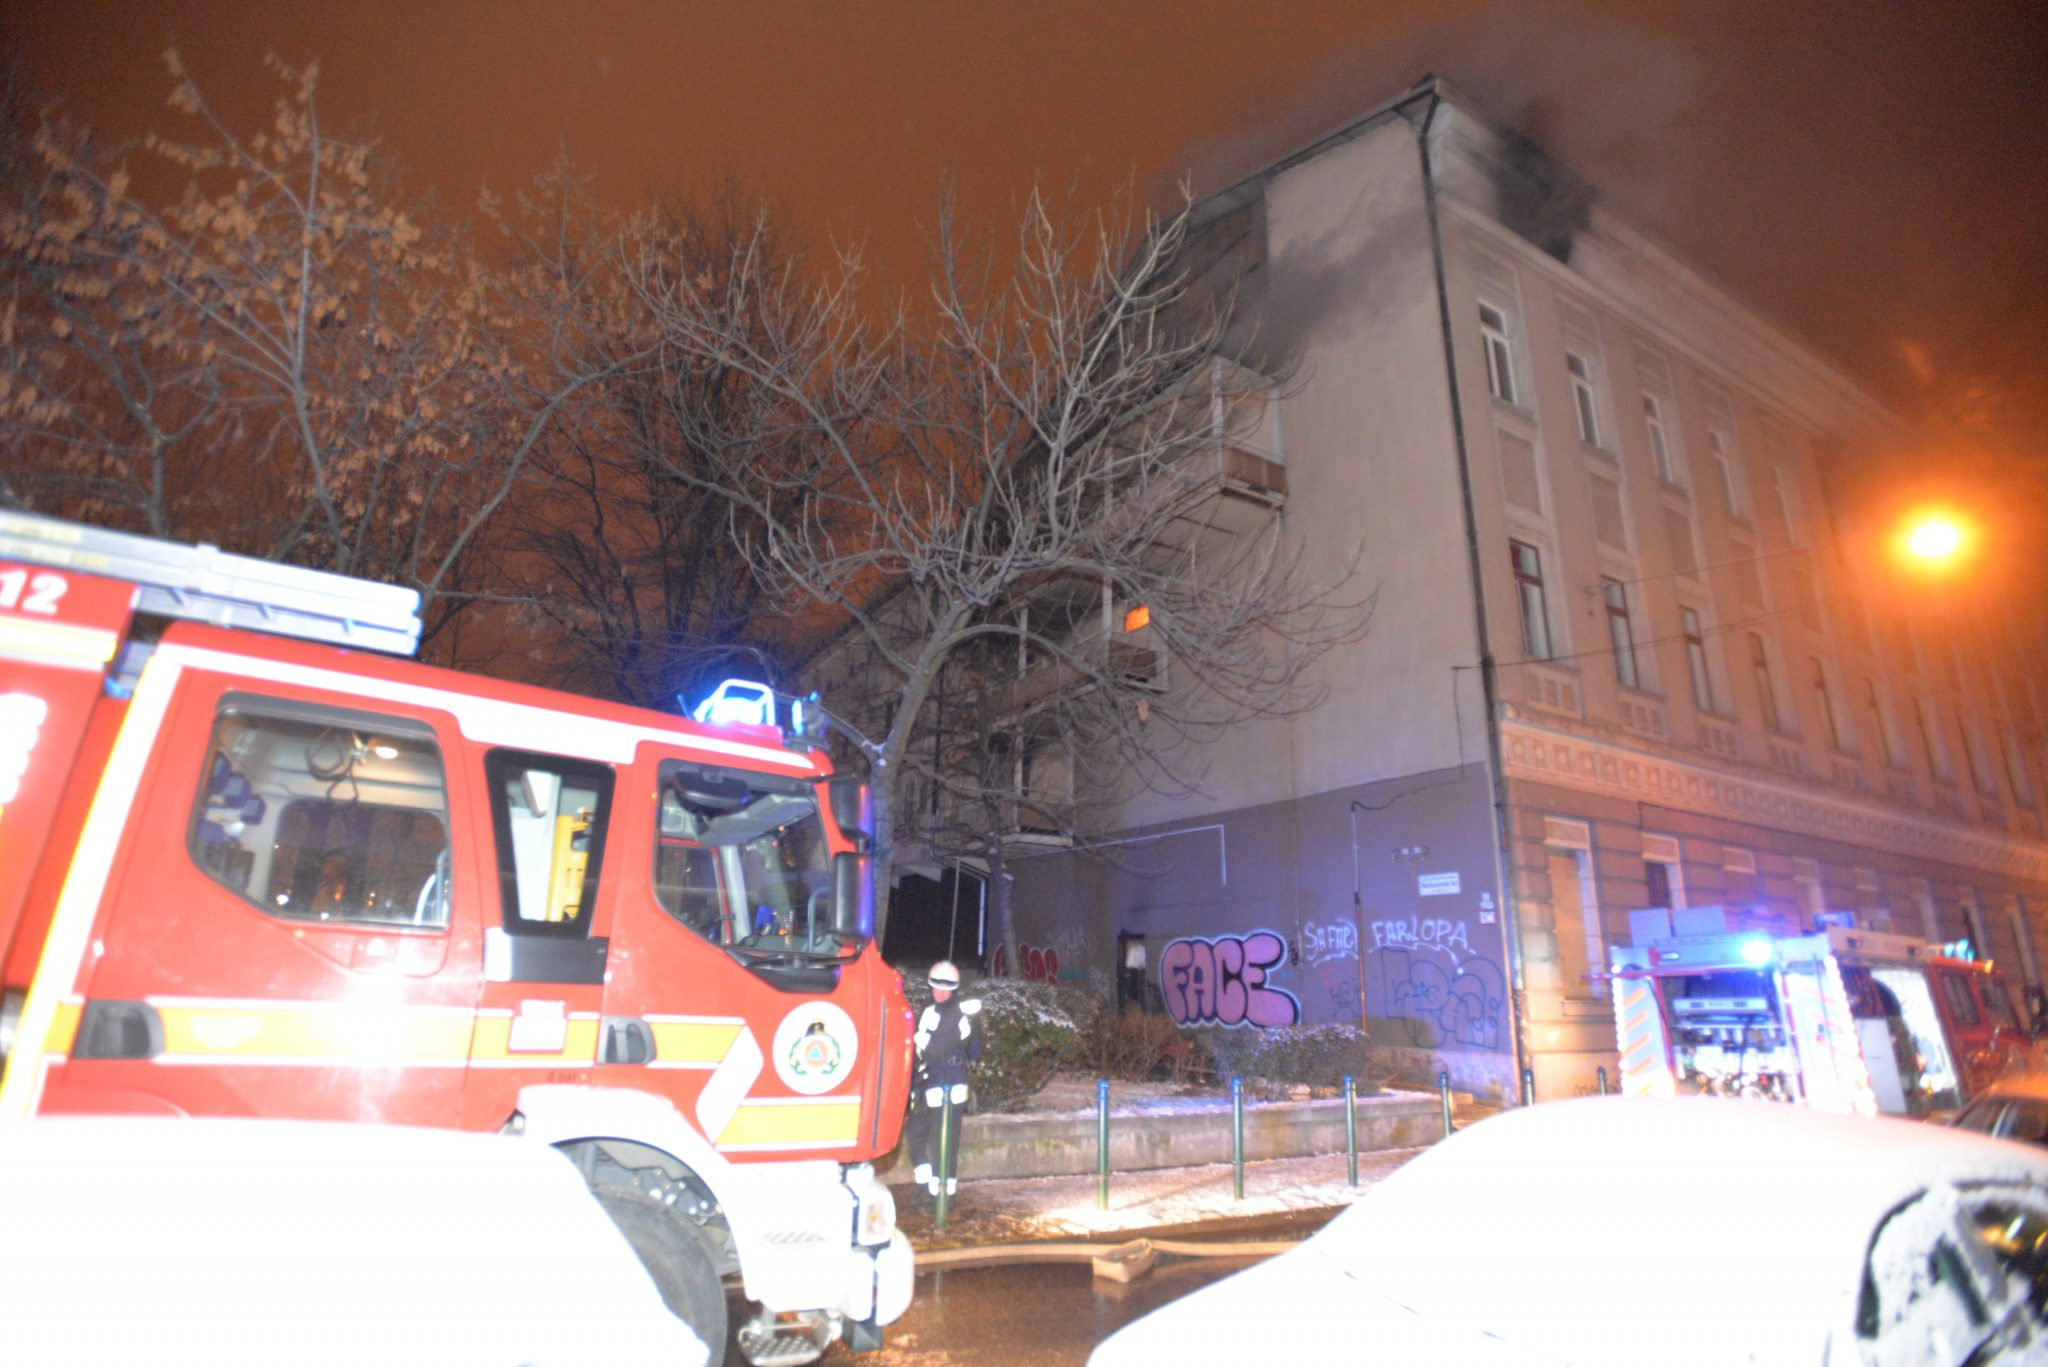 dormitory on fire Budapest